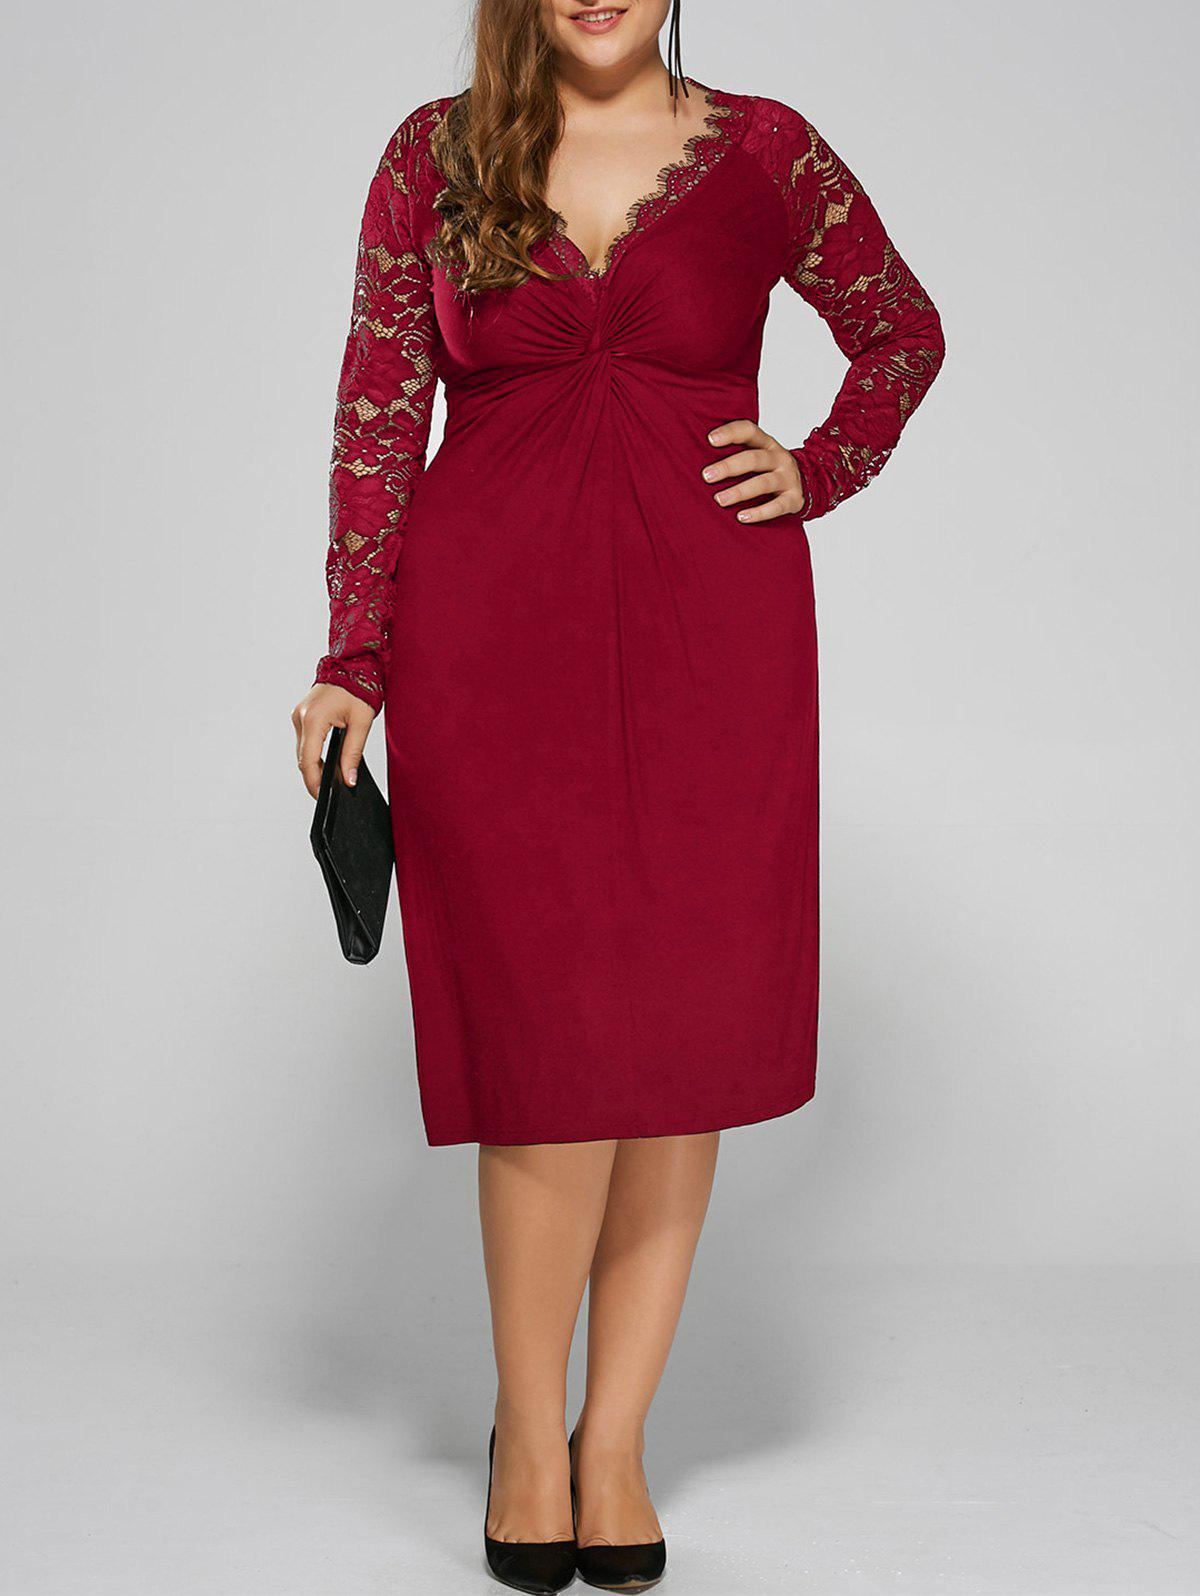 Plus Size Twist Front Lace Insert Fitted DressWOMEN<br><br>Size: XL; Color: RED; Style: Brief; Material: Polyester,Spandex; Silhouette: Straight; Dresses Length: Knee-Length; Neckline: Plunging Neck; Sleeve Length: Long Sleeves; Pattern Type: Floral; With Belt: No; Season: Fall,Spring; Weight: 0.3900kg; Package Contents: 1 x Dress;